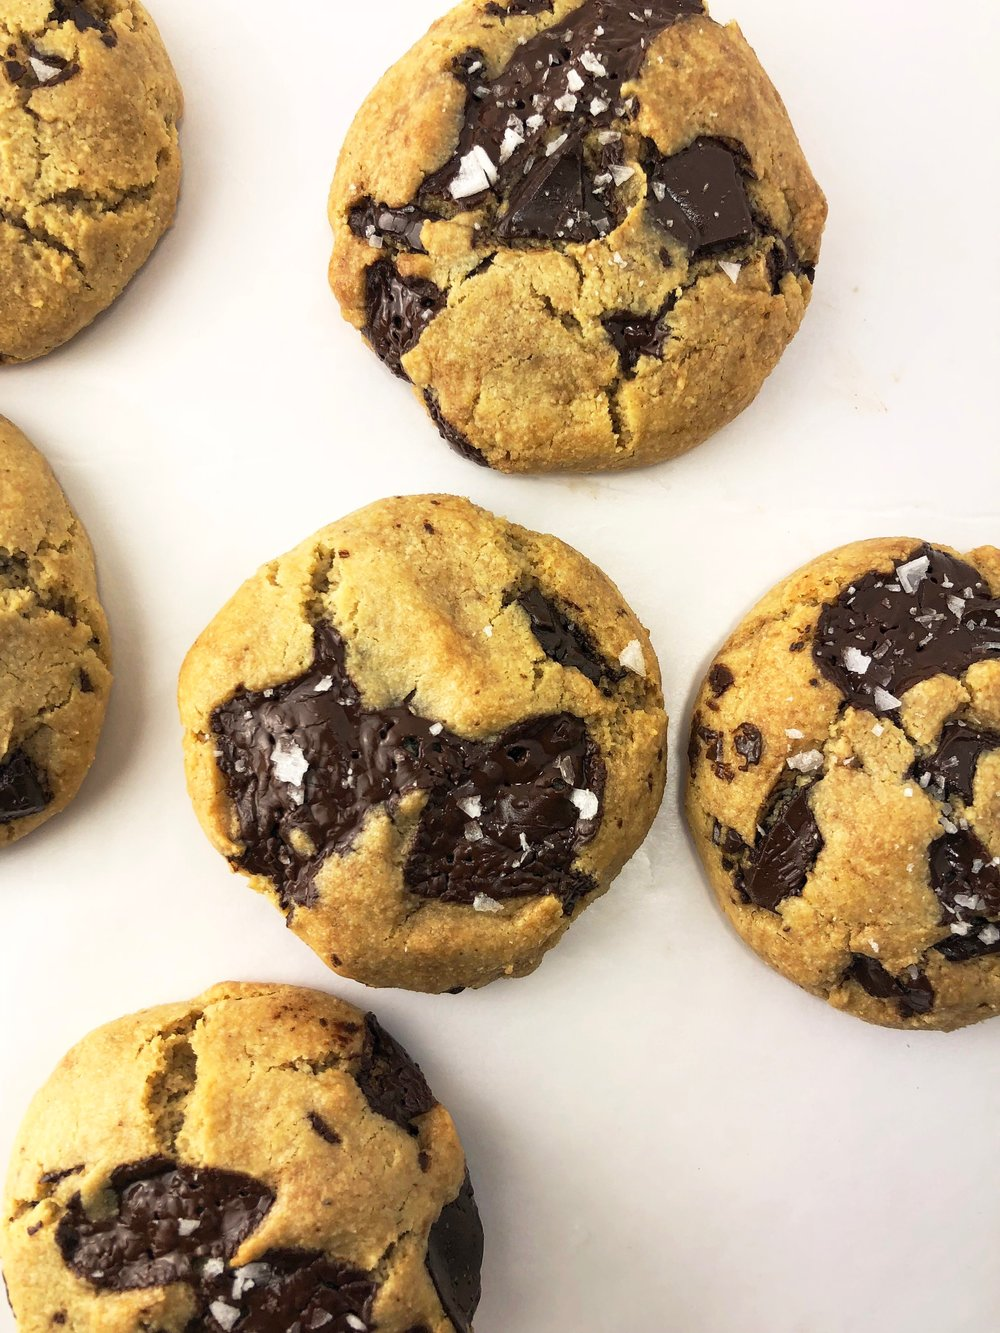 Jasmine Comer's Chocolate Chip Cookies